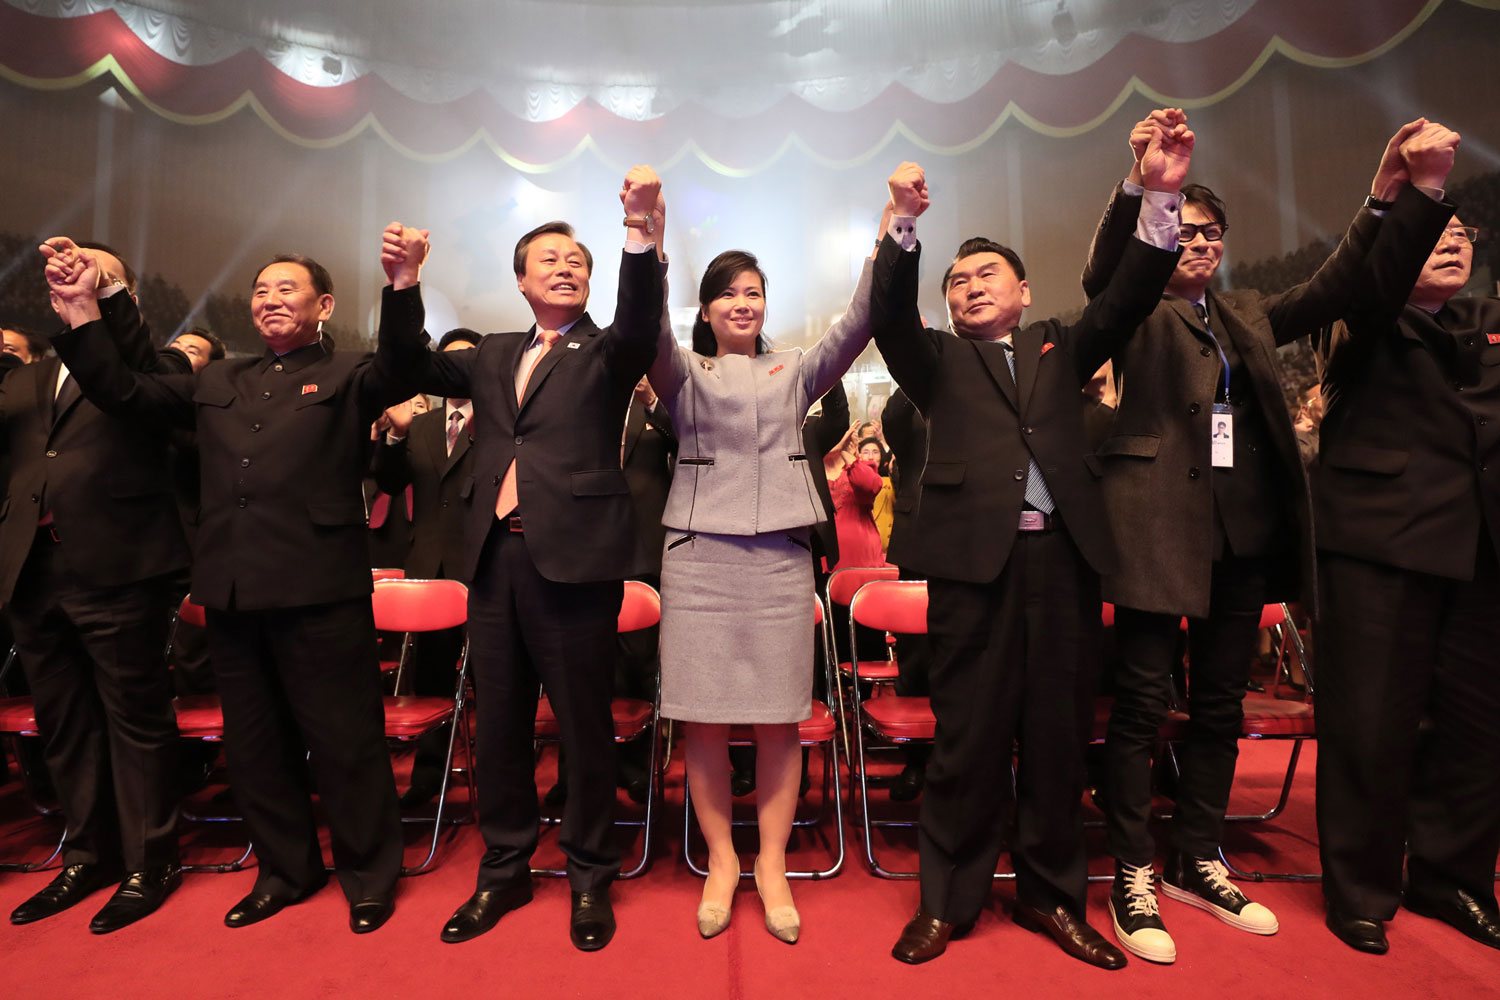 South Korean Culture Minister Do Jong-hwan (fourth from left) and North Korean General Kim Yong Chol (third from left) join Hyon Song-wol (center), founder of the North's popular all-female Moranbong band, and thousands of fans at a joint show by South and North Korean musicians at the 12,000-seat Ryugyong Jong Ju Yong Gymnasium in Pyongyang, North Korea, on April 3. K-pop stars held cross-border cultural performances in North Korea in the latest reconciliatory gesture before a rare inter-Korean summit. (Korea Pool/AFP/Getty Images)